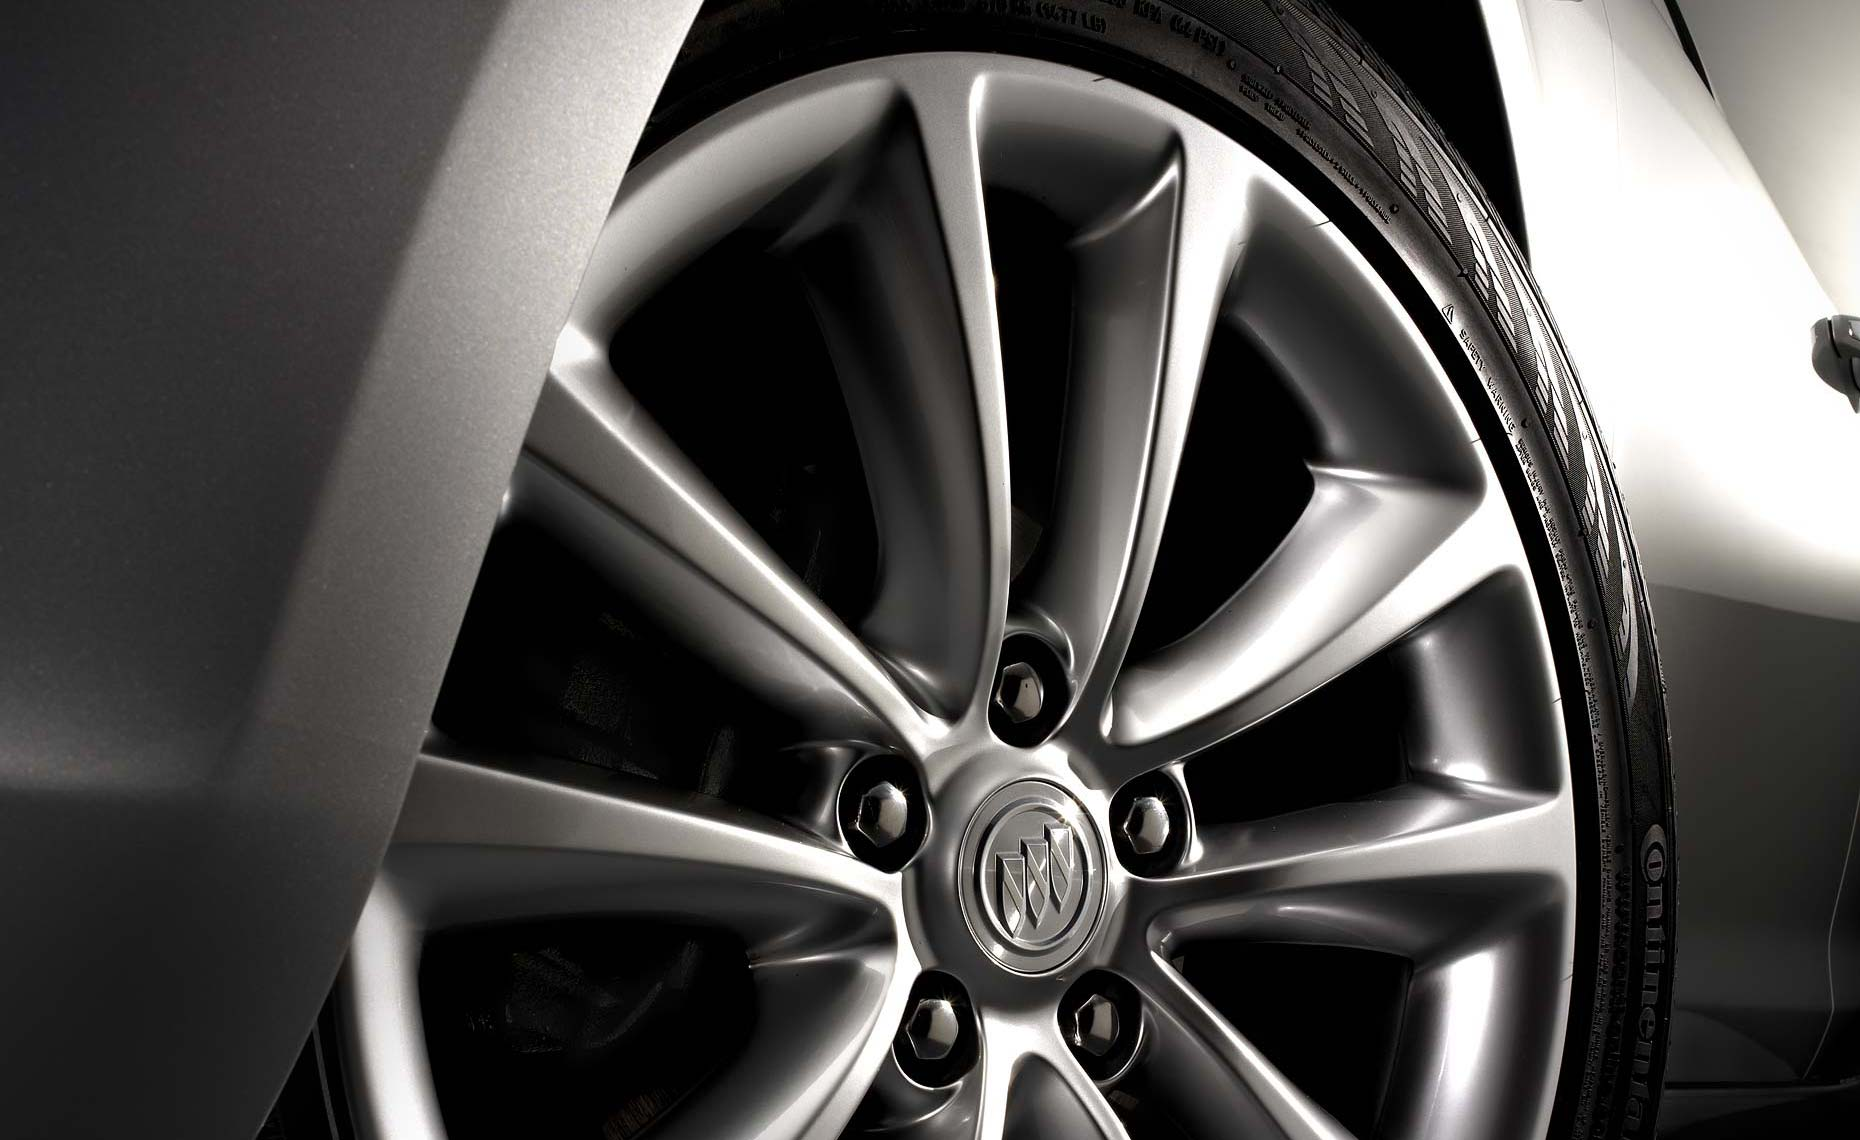 2011 buick verano-wheel detail.jpg